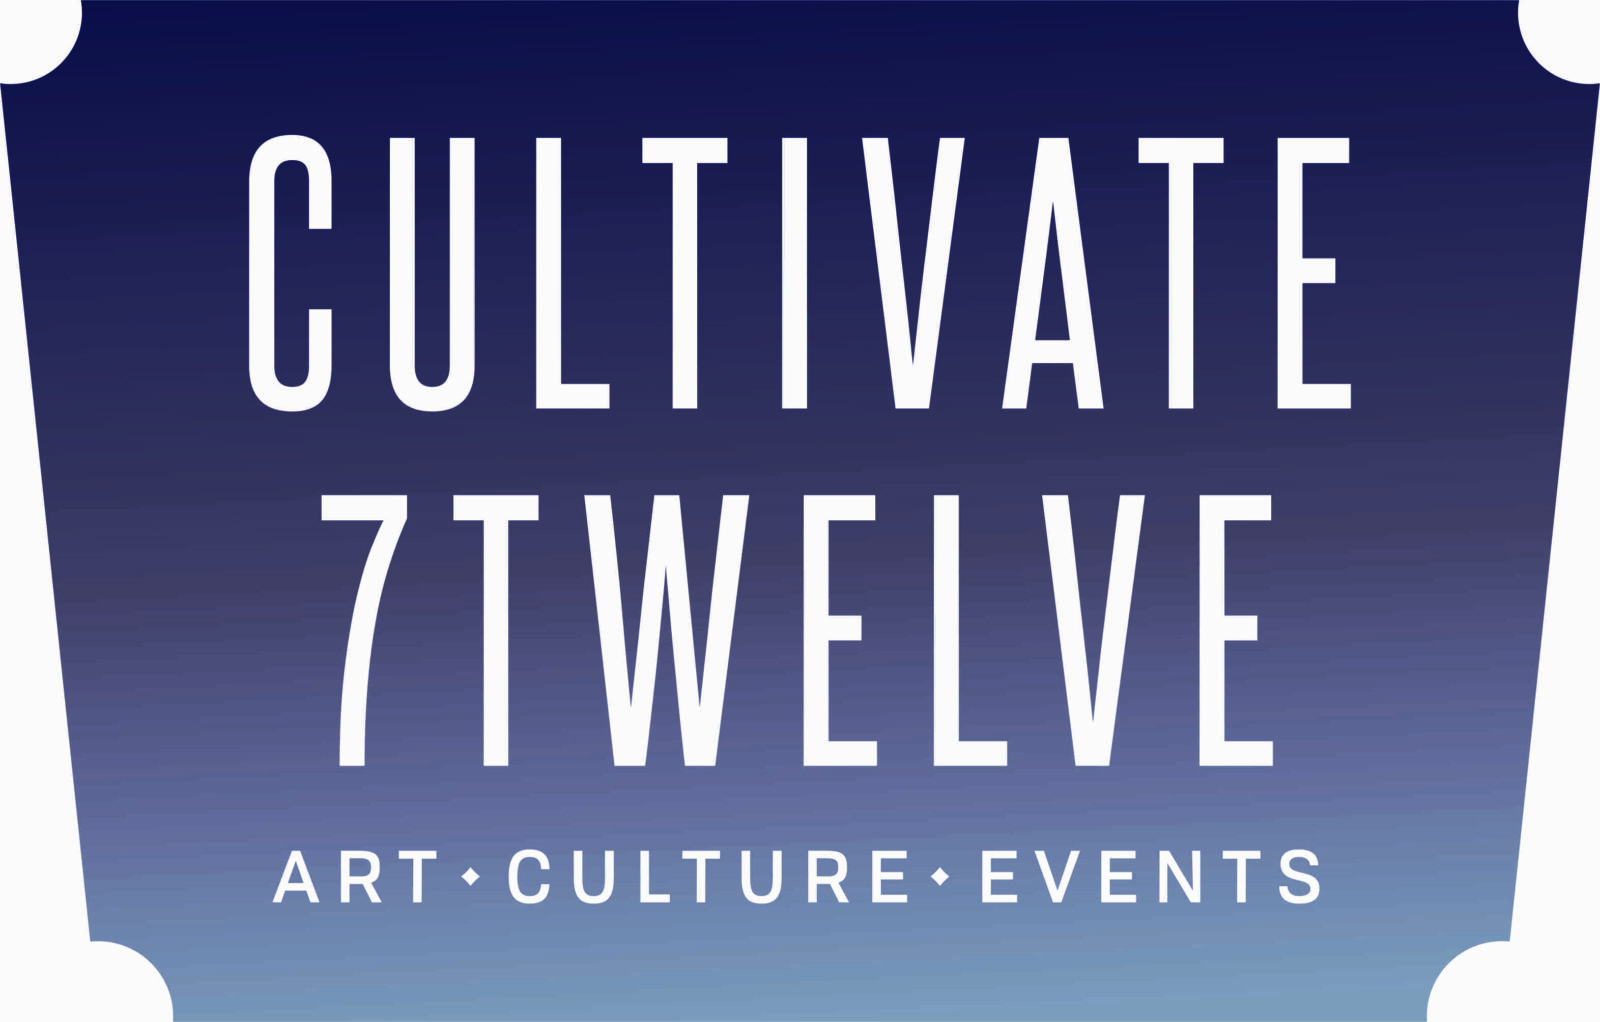 Live Jazz at Cultivate 7Twelve